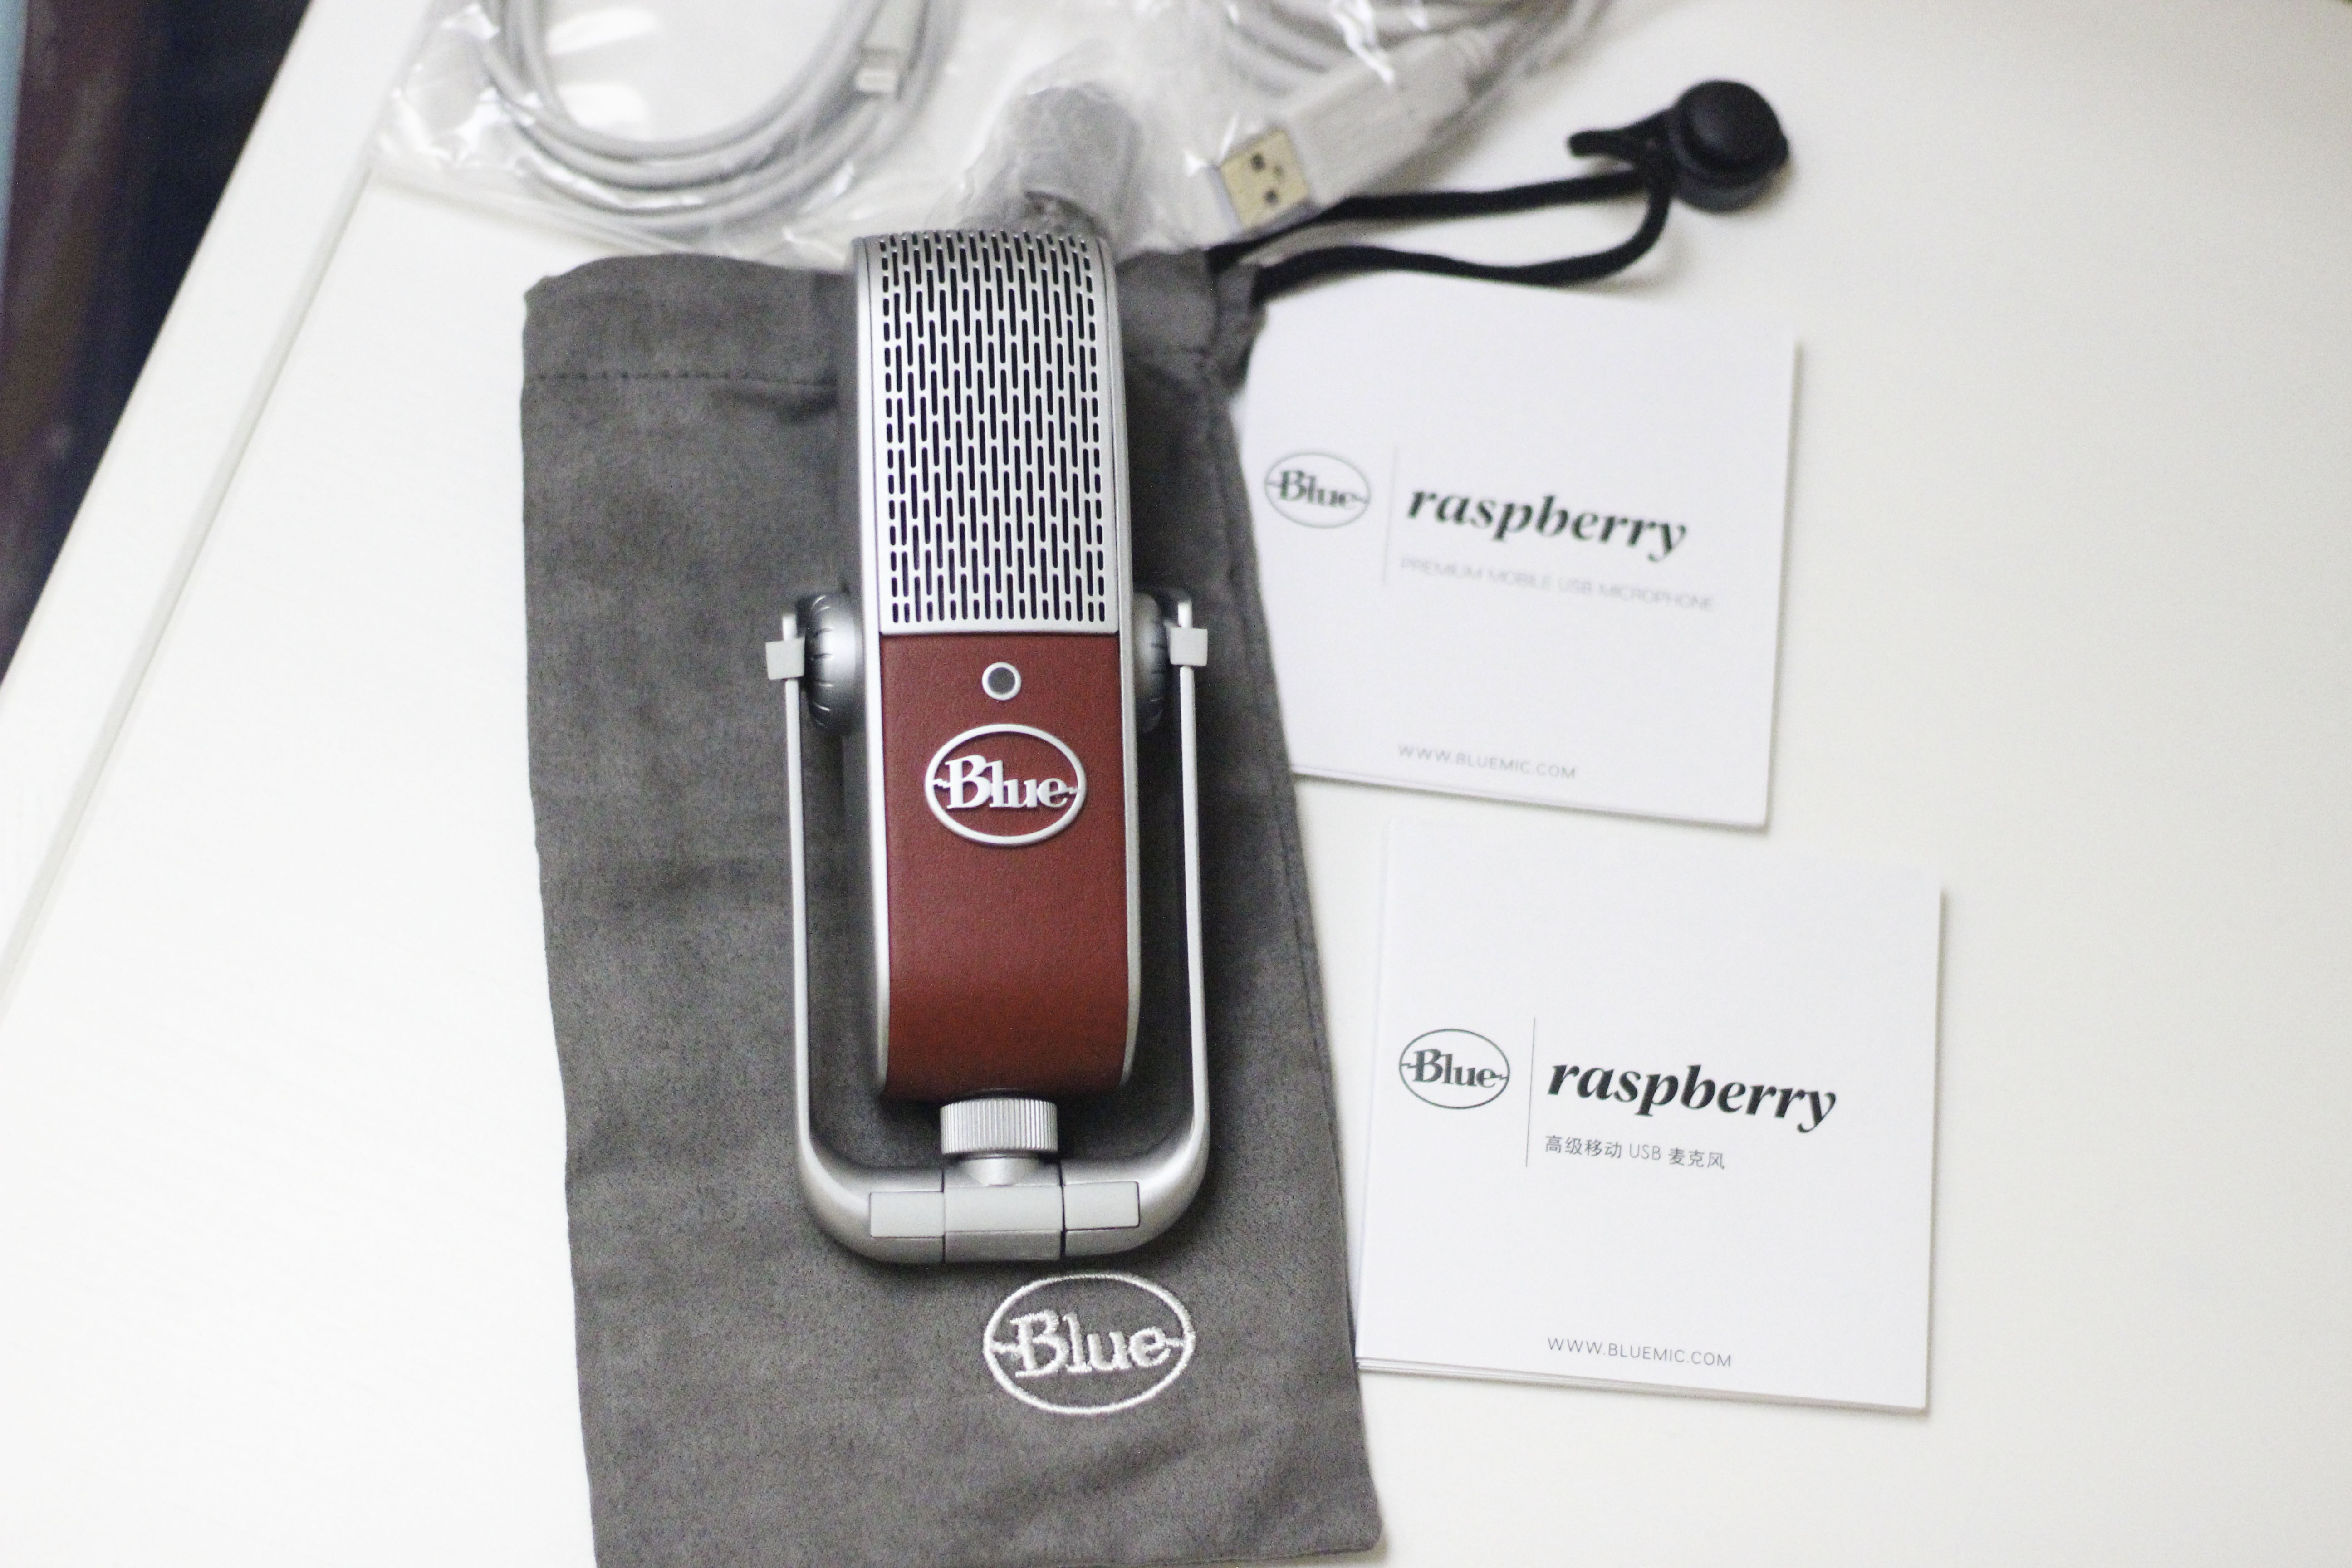 Blue Raspberry Microphone Review Archives - fashionandstylepolice